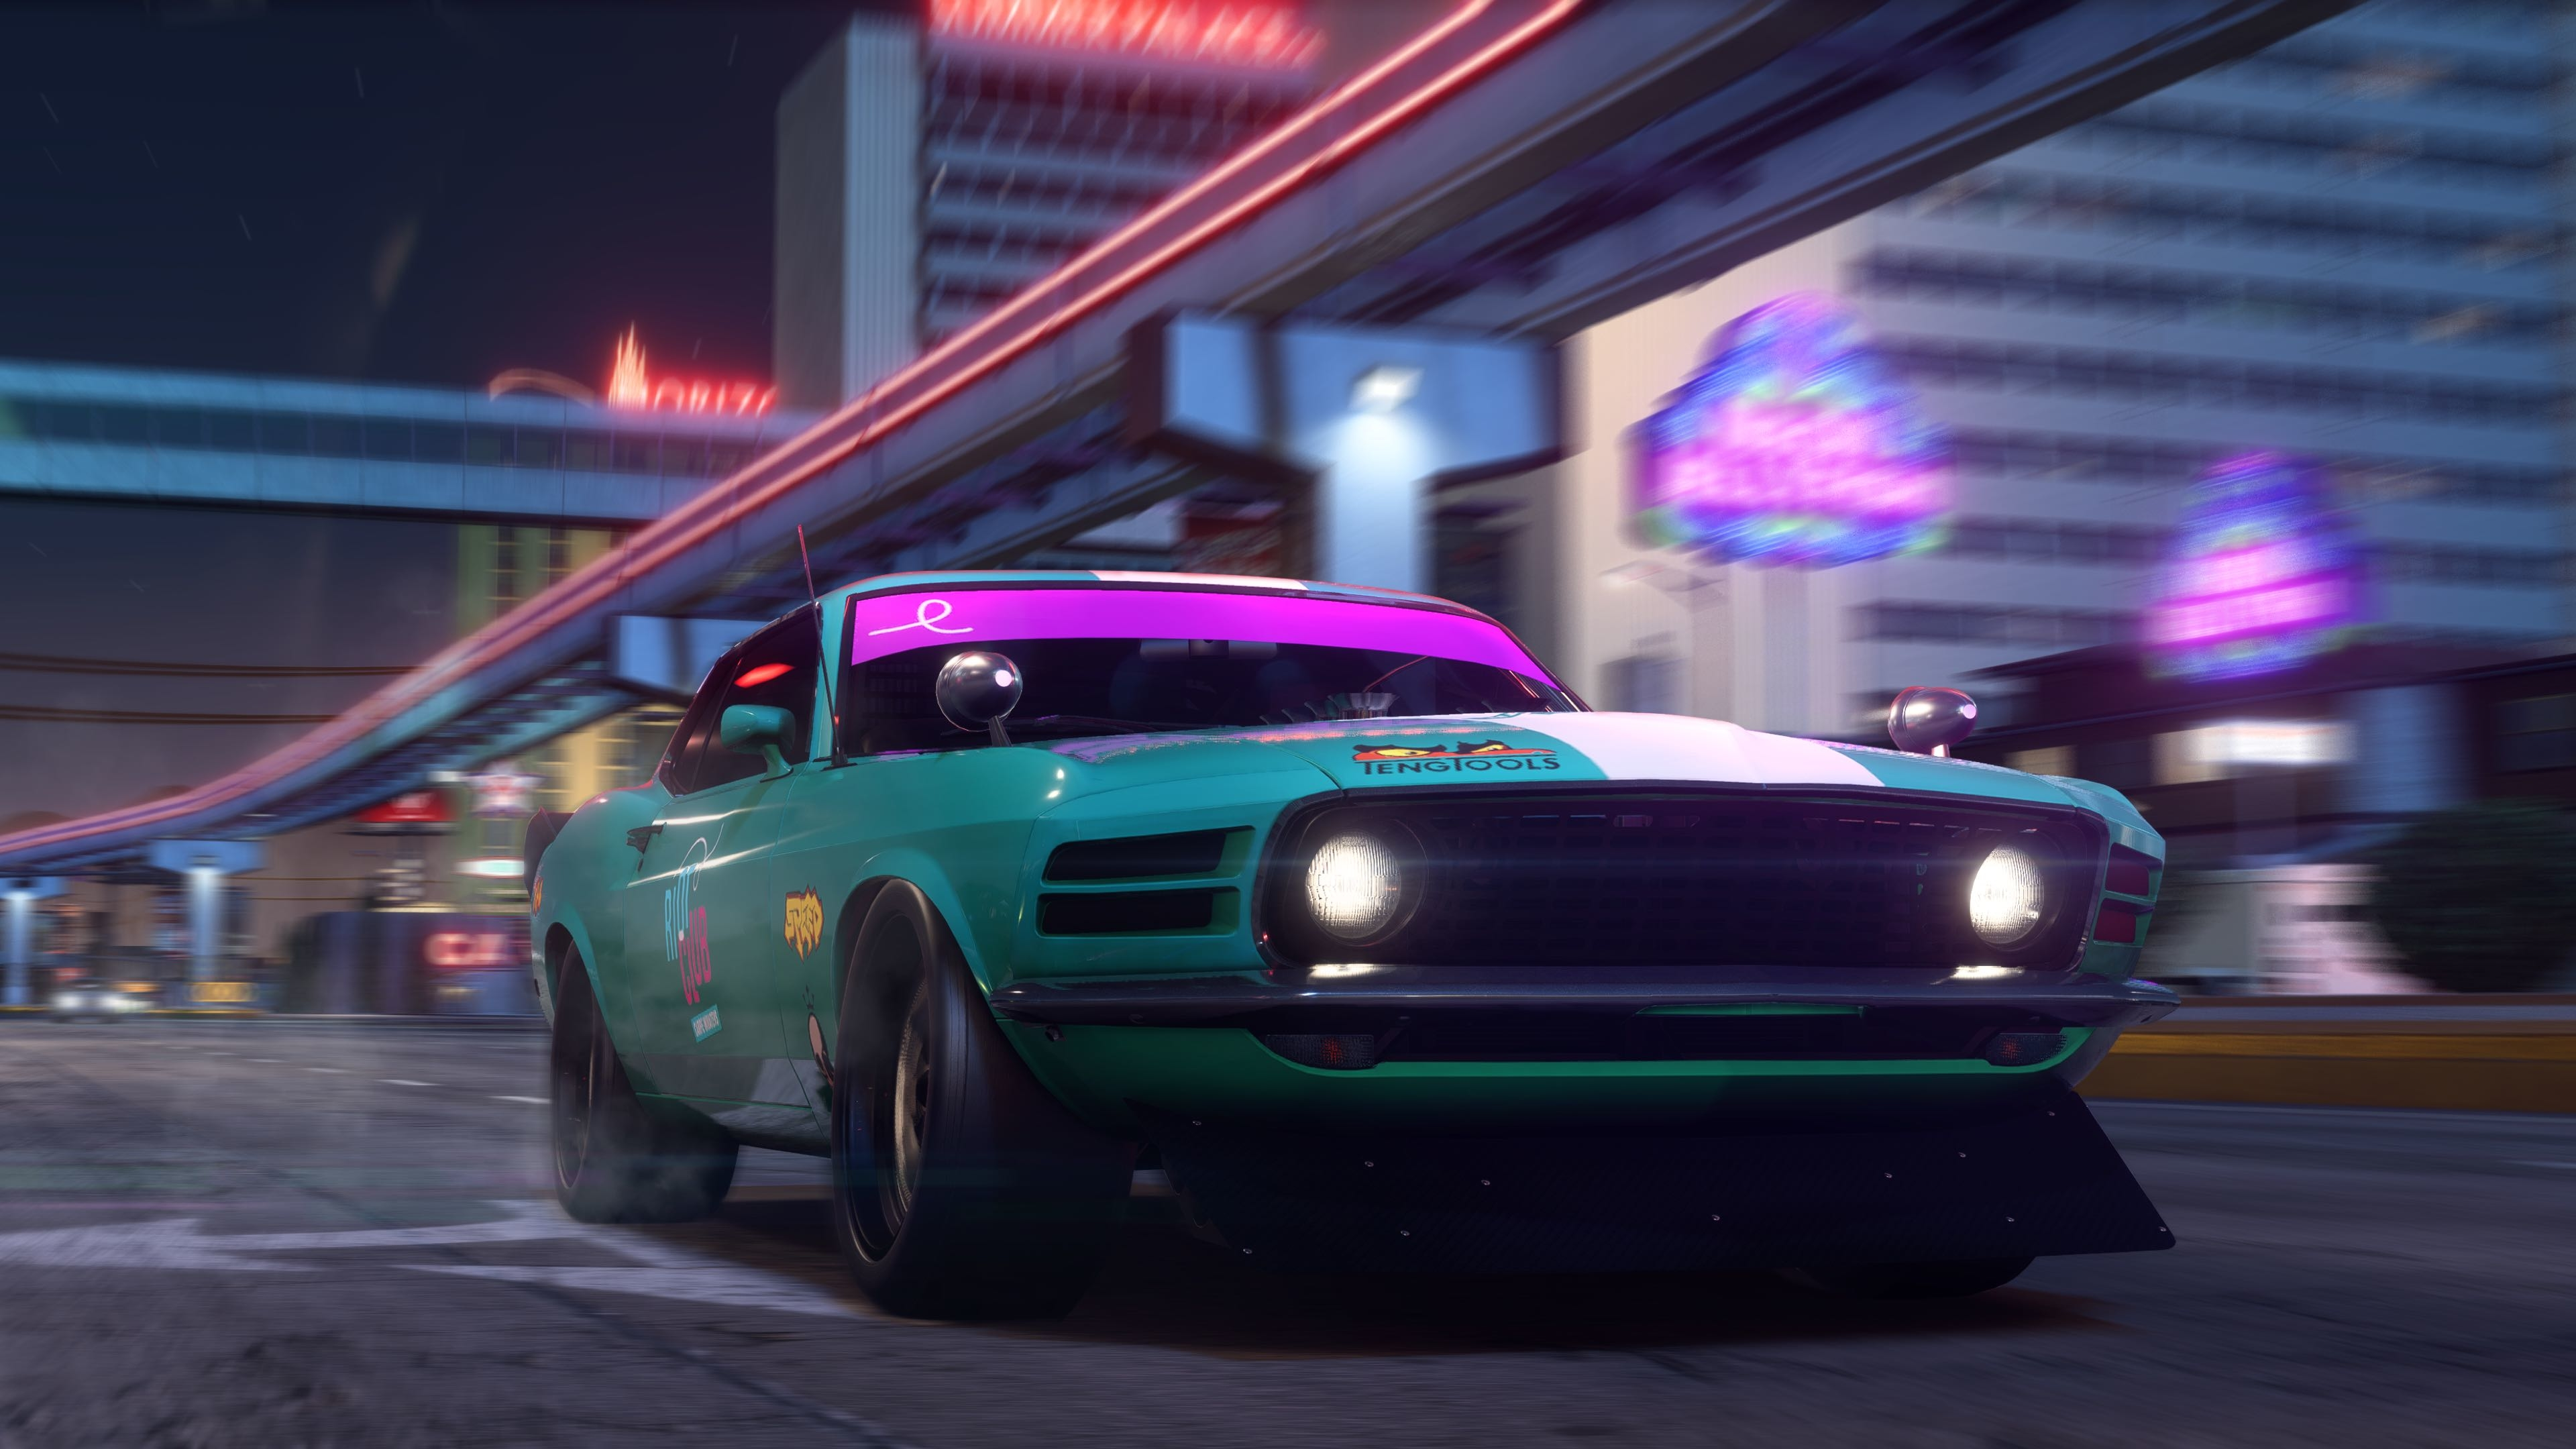 Need For Speed Payback Wallpaper: Riot Club Street Leagues Need For Speed Payback 2017, HD